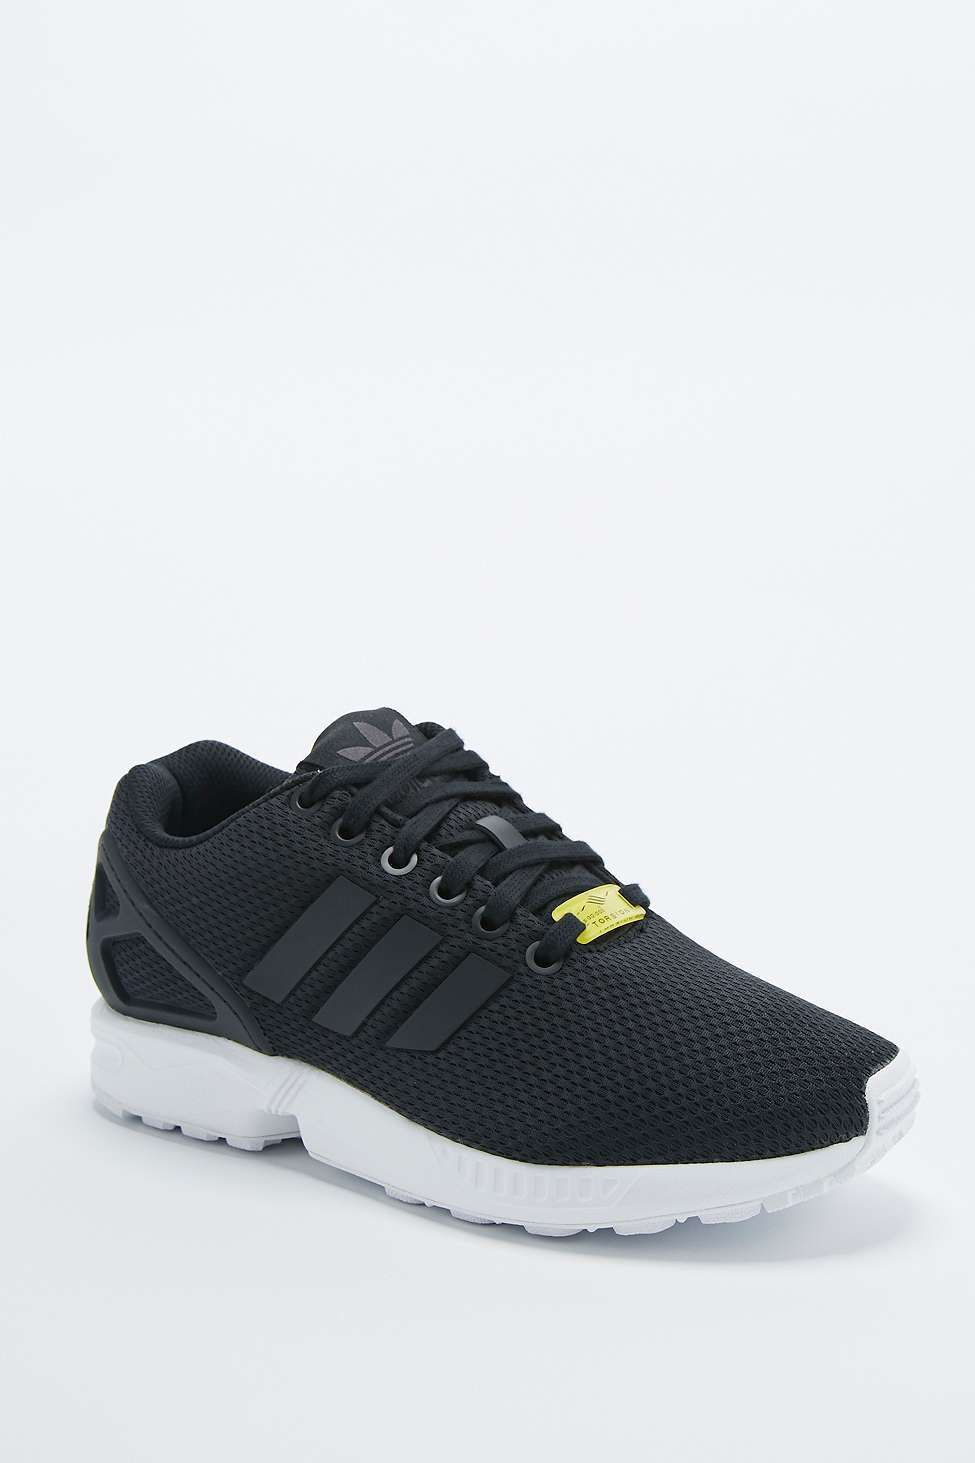 0e9b2ac4c adidas ZX Flux Black Trainers